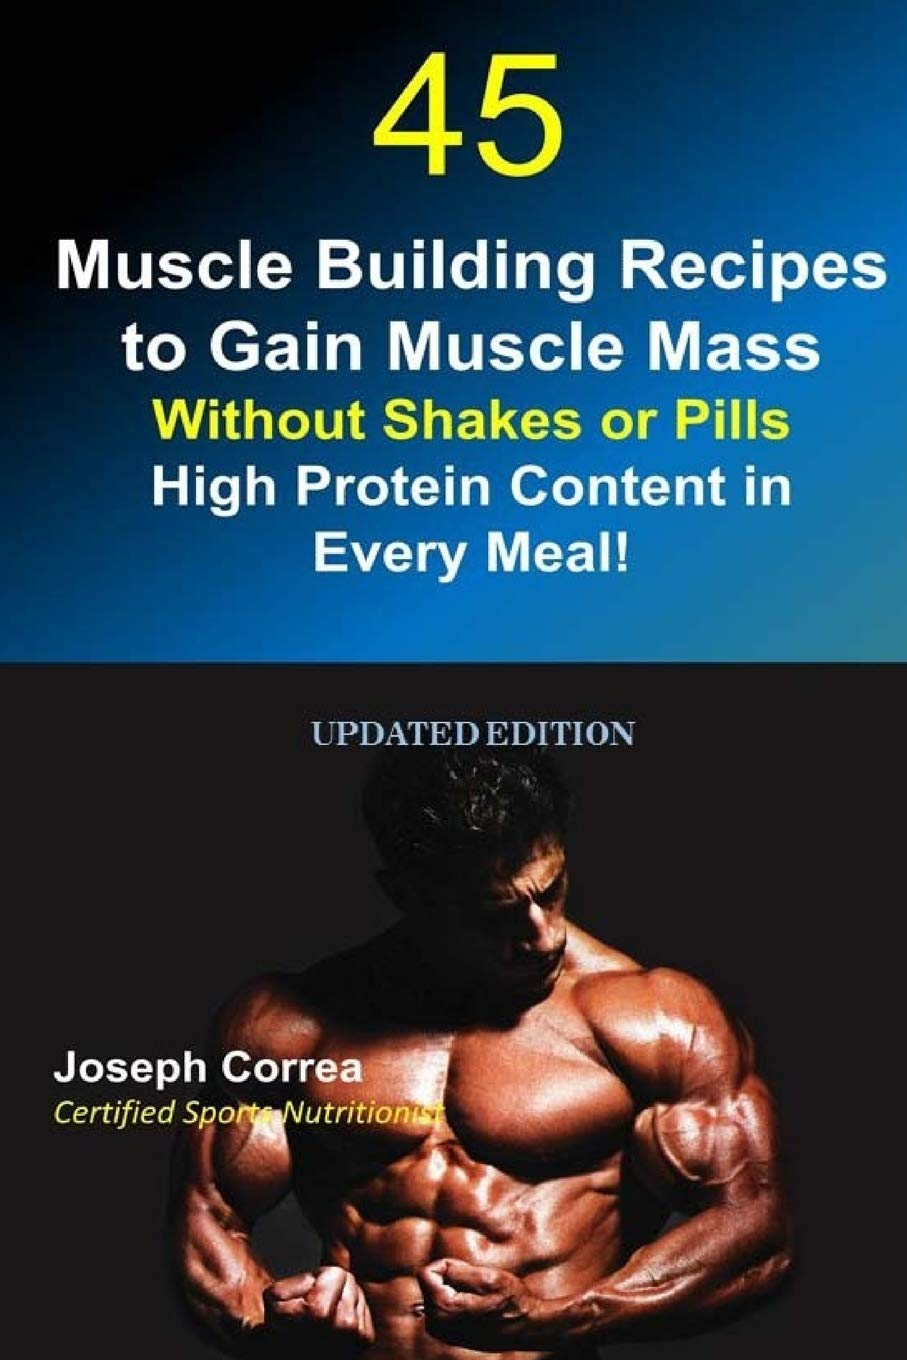 45 Muscle Building Recipes to Gain Muscle Mass Without Shakes or Pills: High Protein Content in Every Meal! ebook